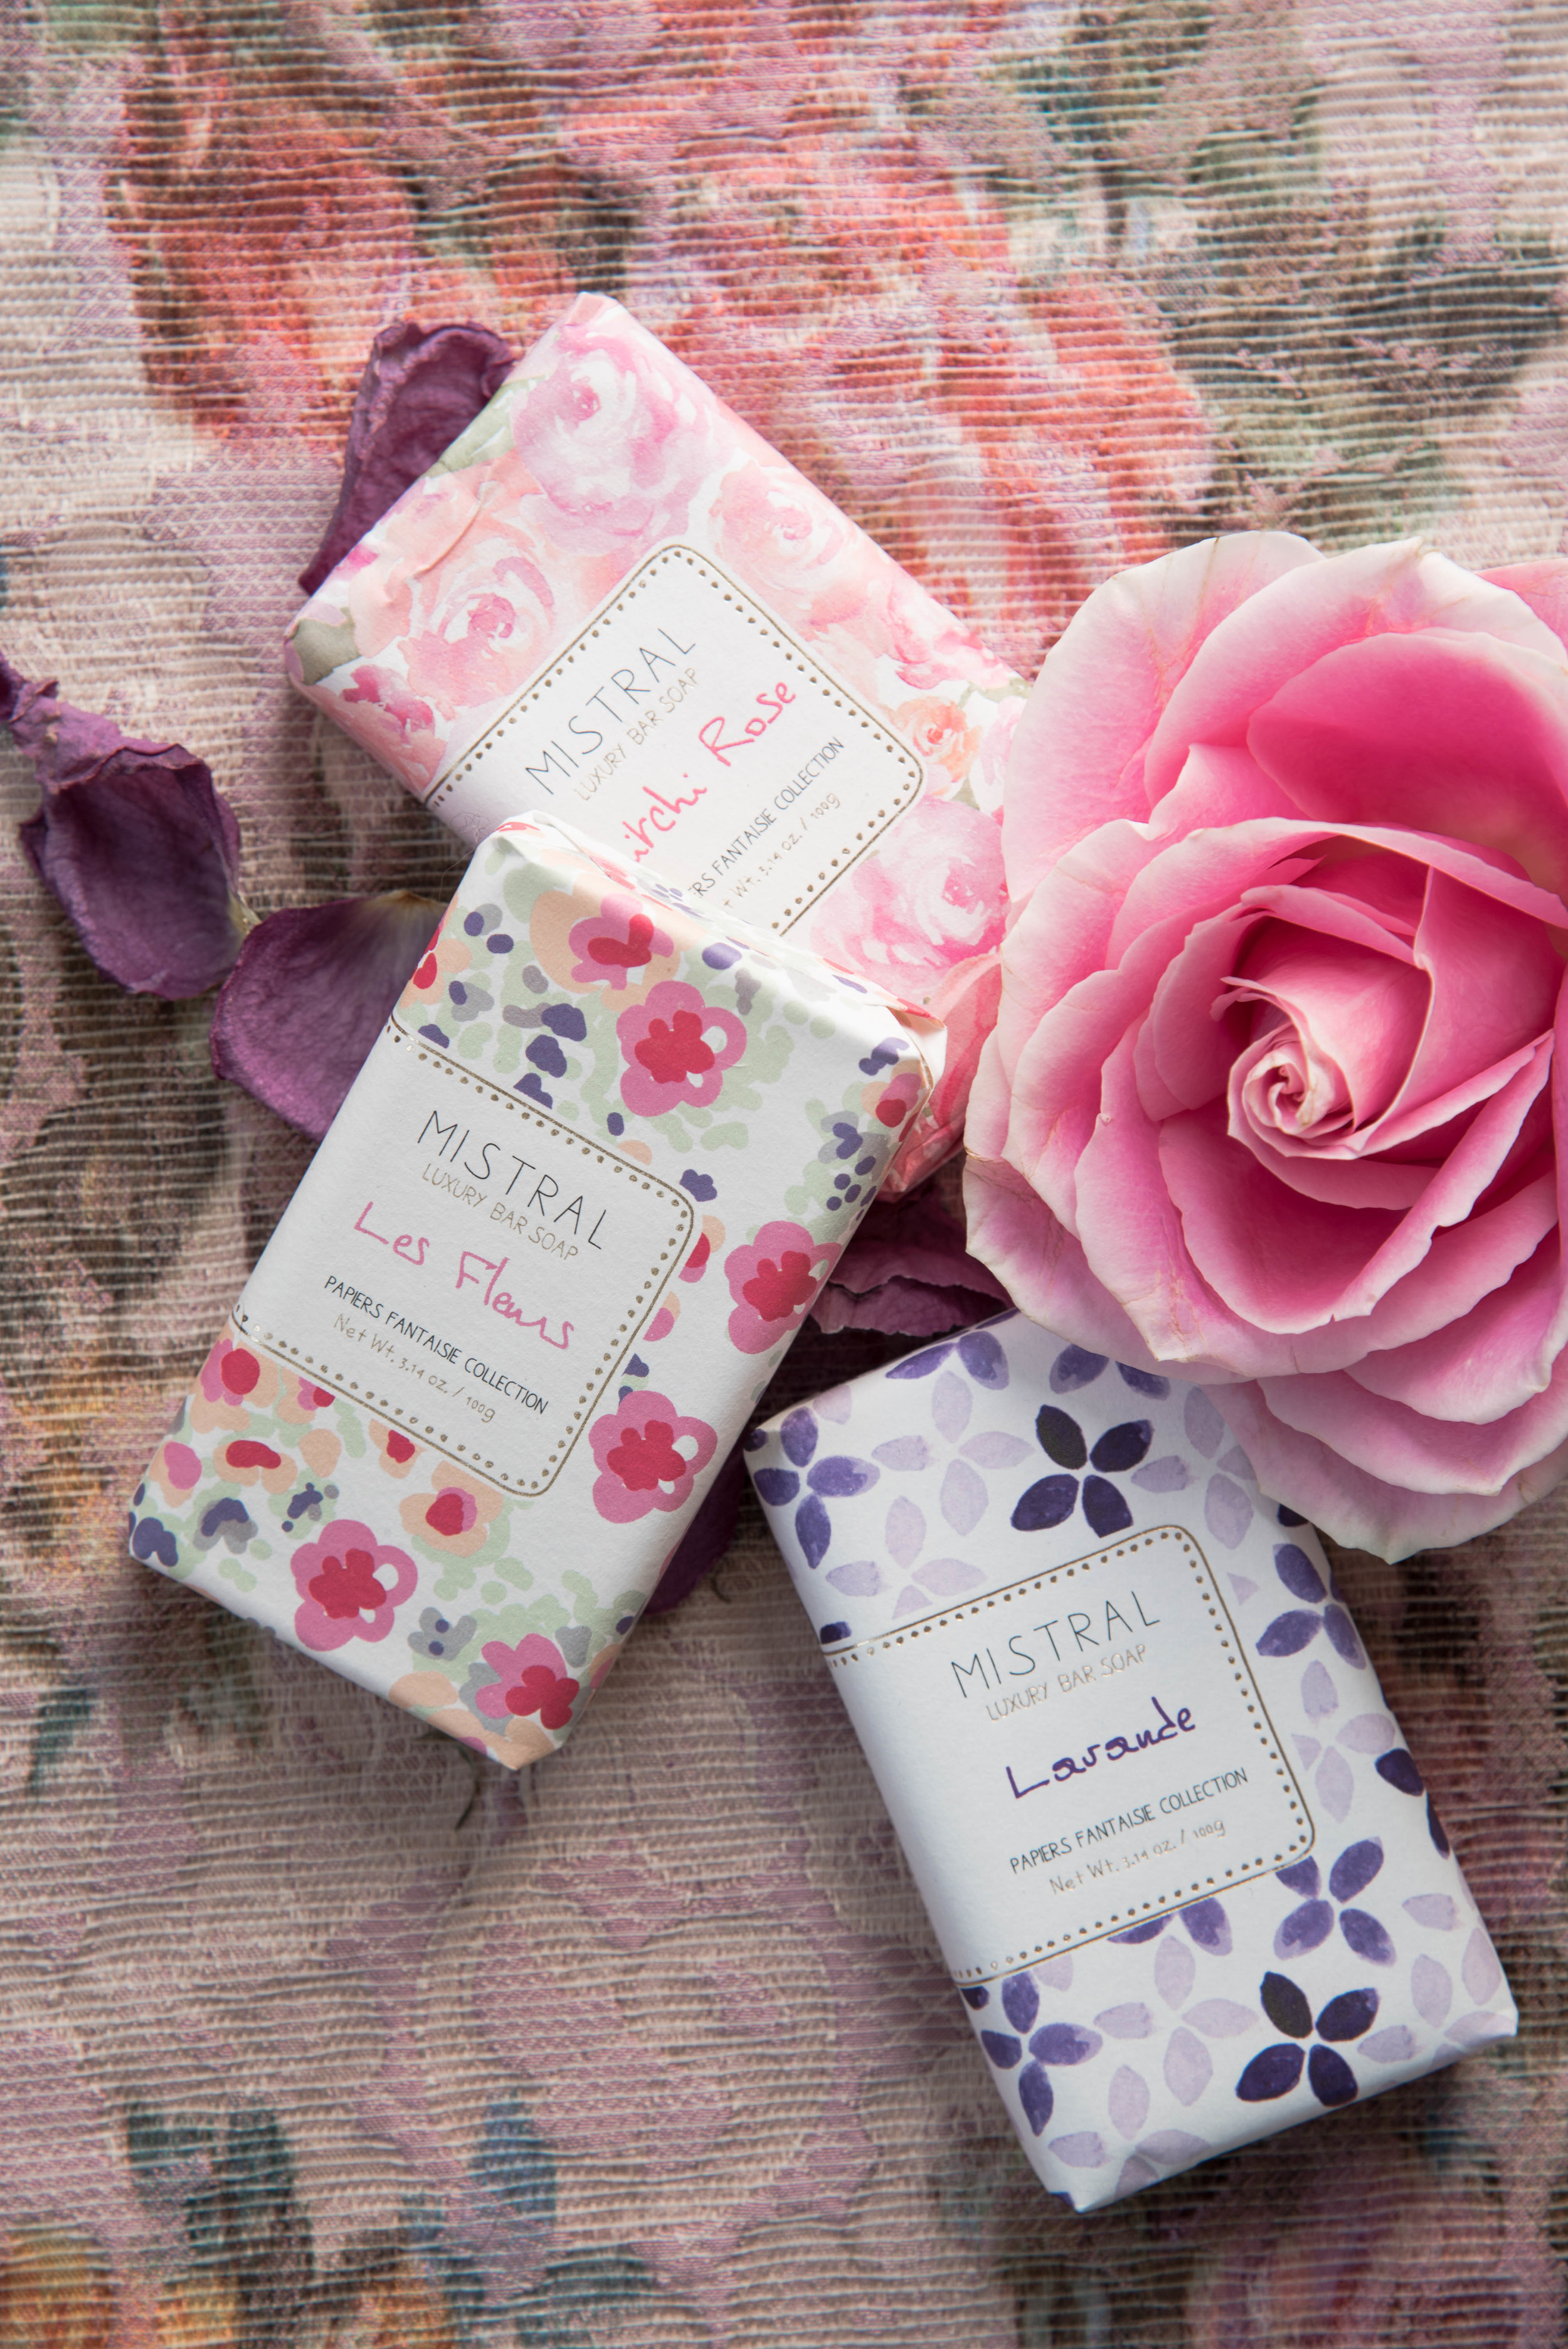 ROSE & IVY Journal Holiday Gift Guide Mistral Soaps